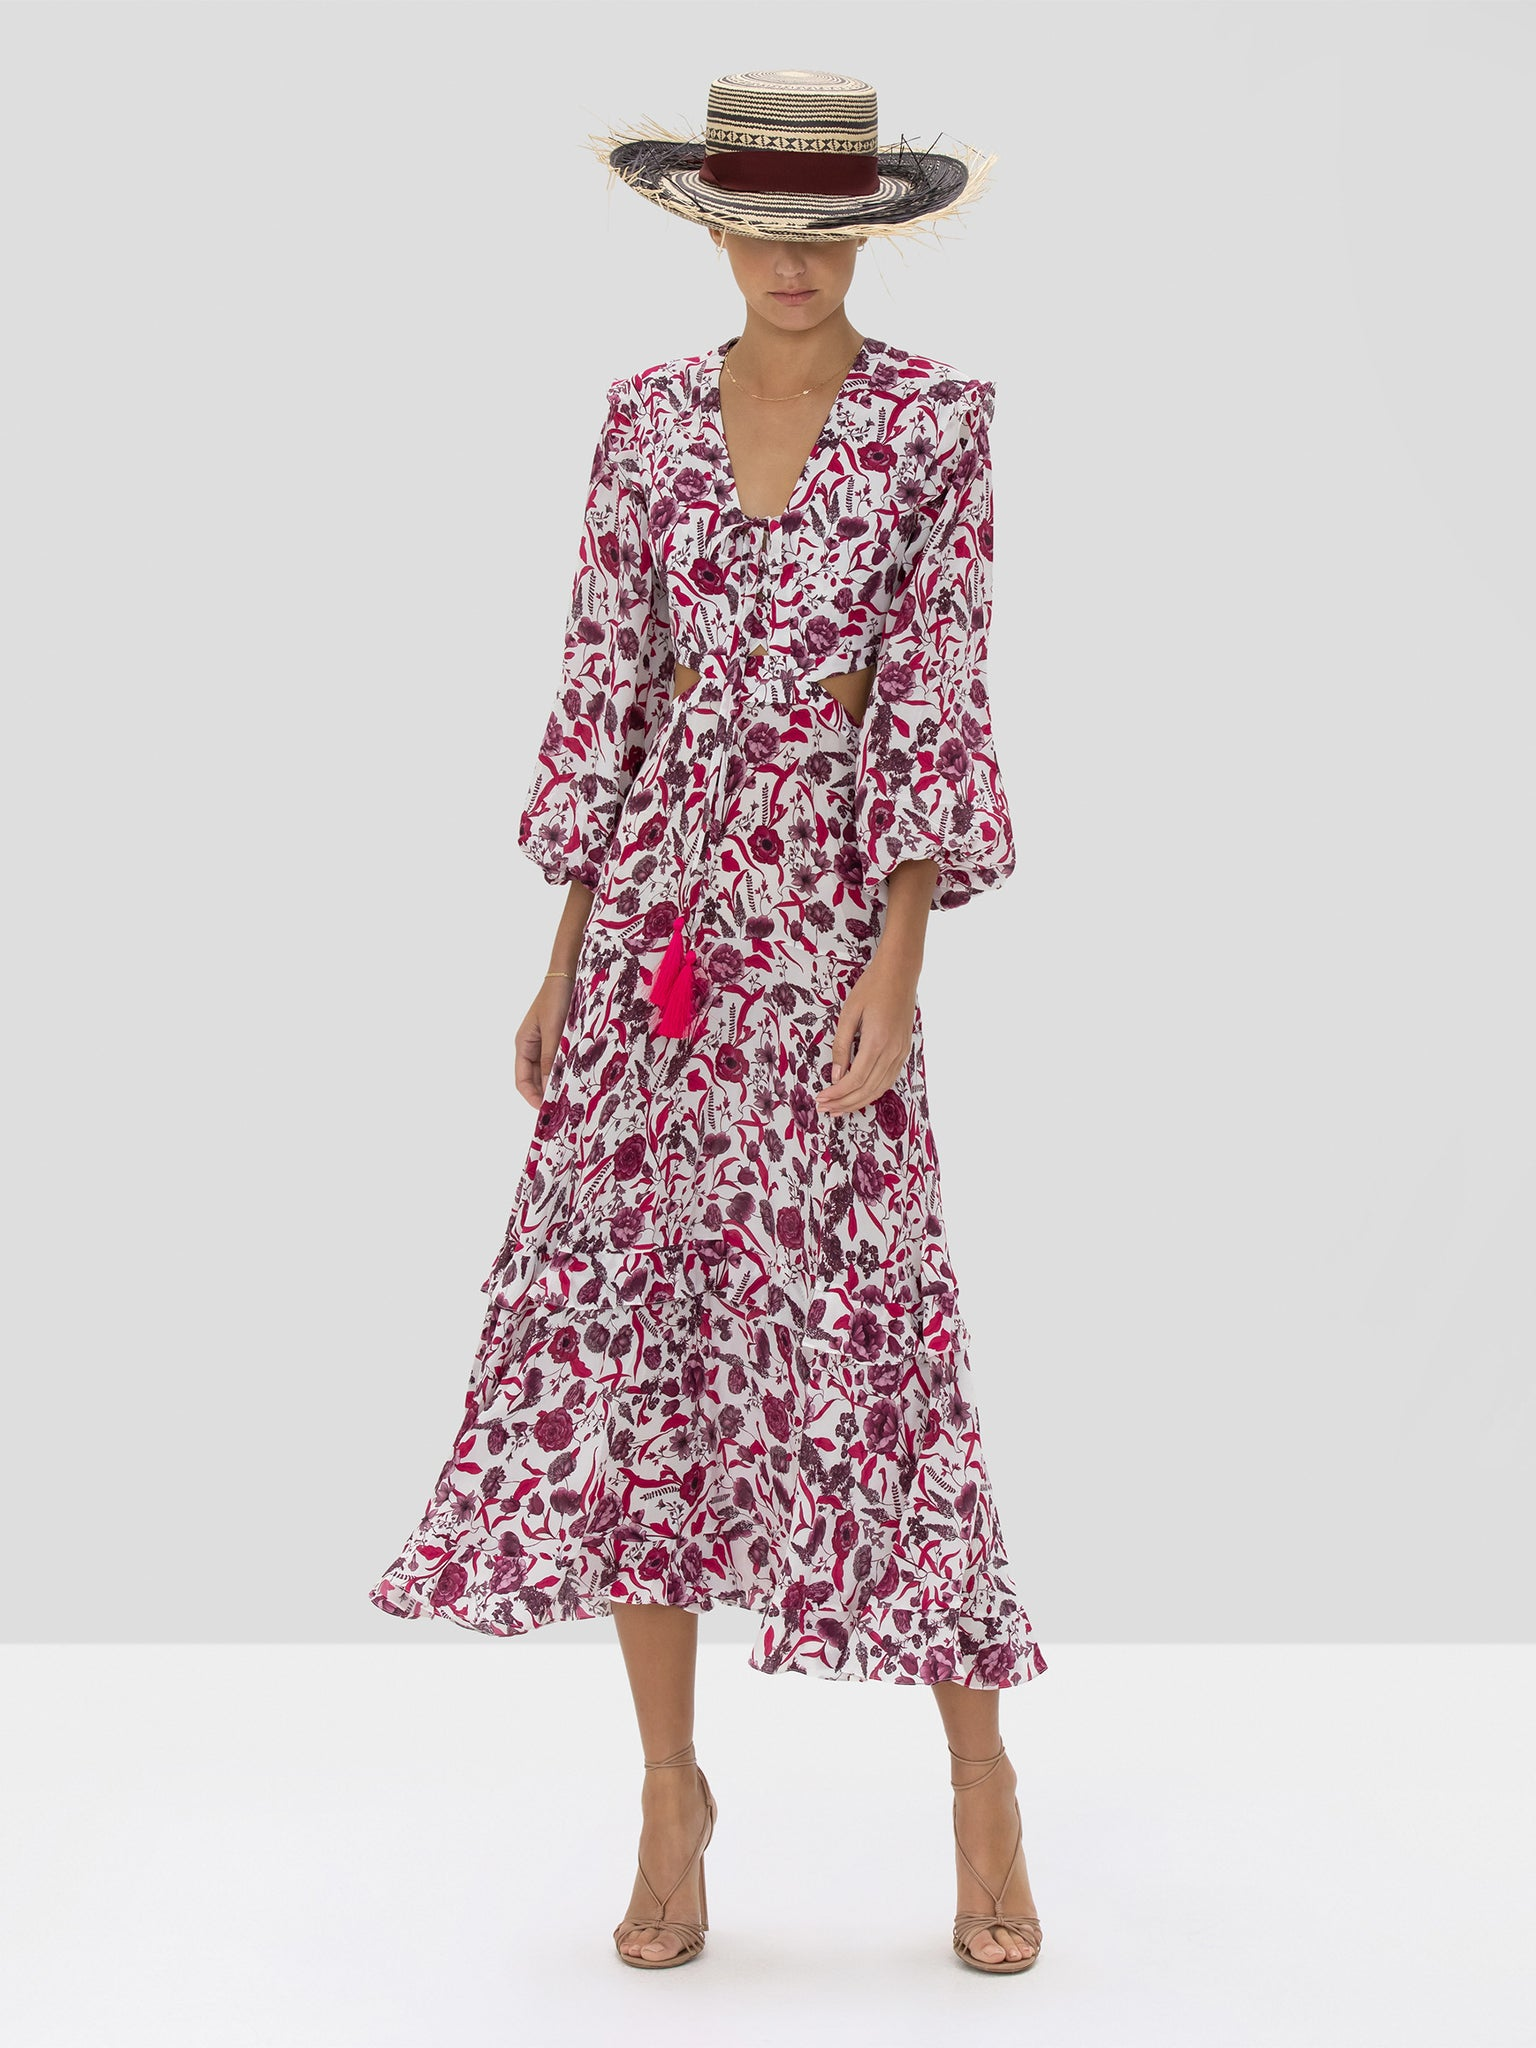 The Nakkita Dress in Berry Floral from the Spring Summer 2020